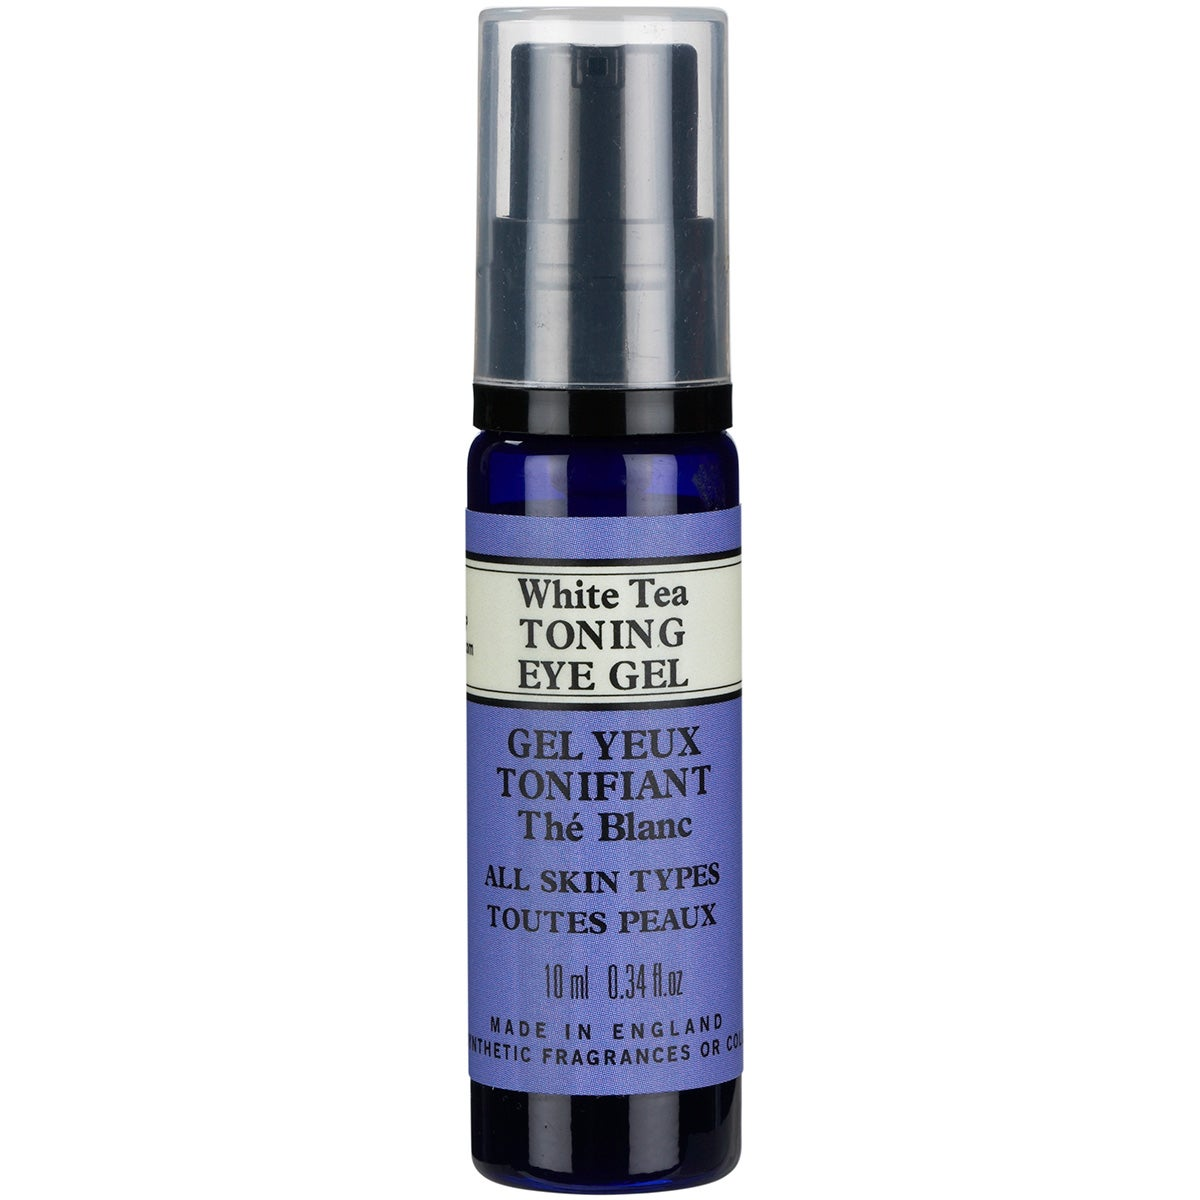 Neal's Yard Remedies White Tea Toning Eye Gel